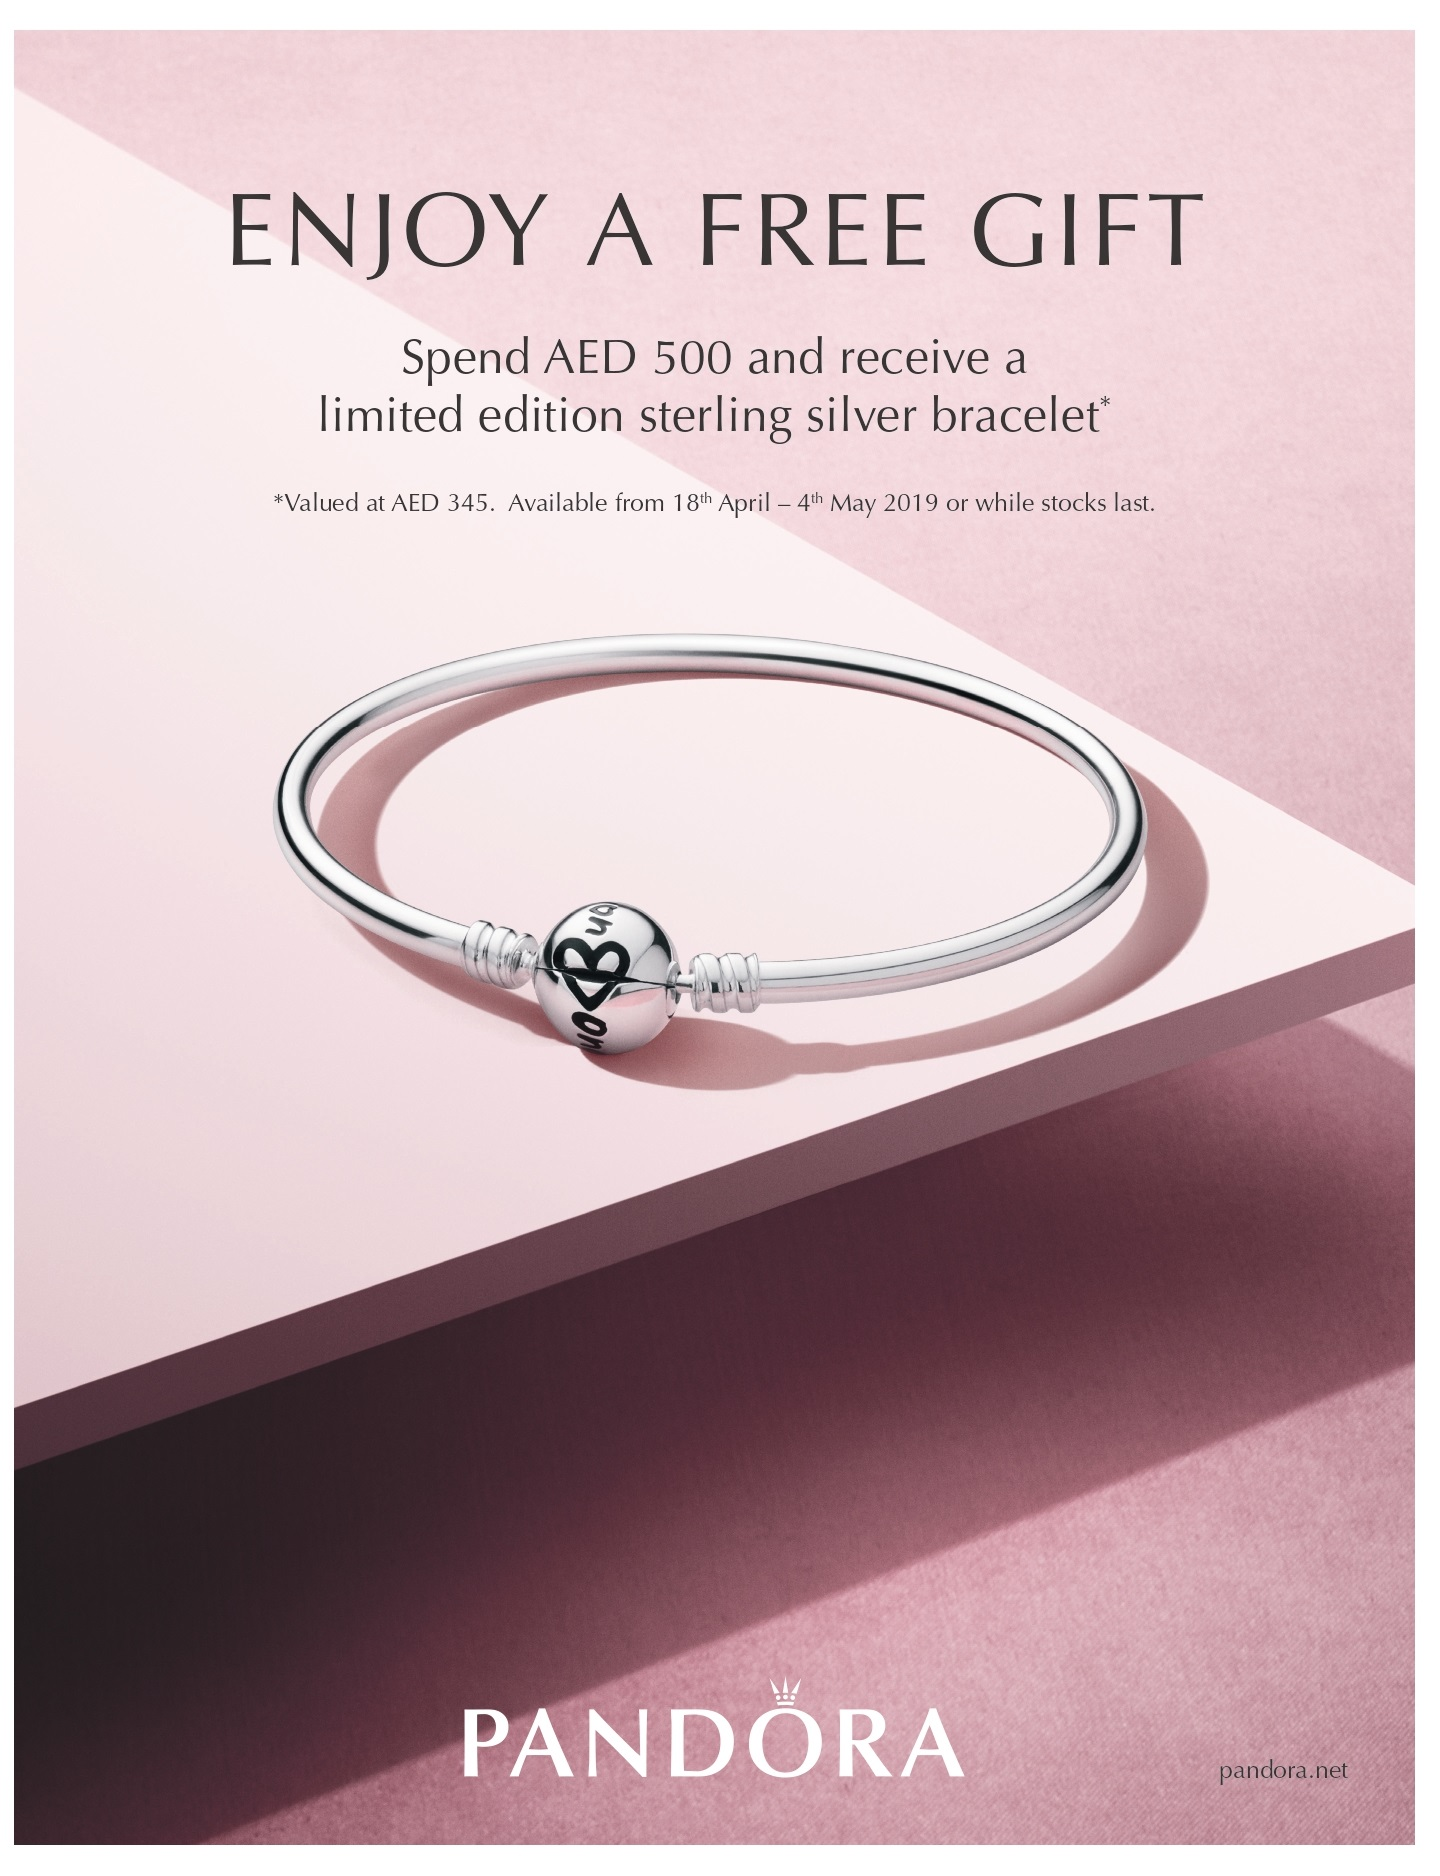 Reward yourself with a free gift from PANDORA this Mother's